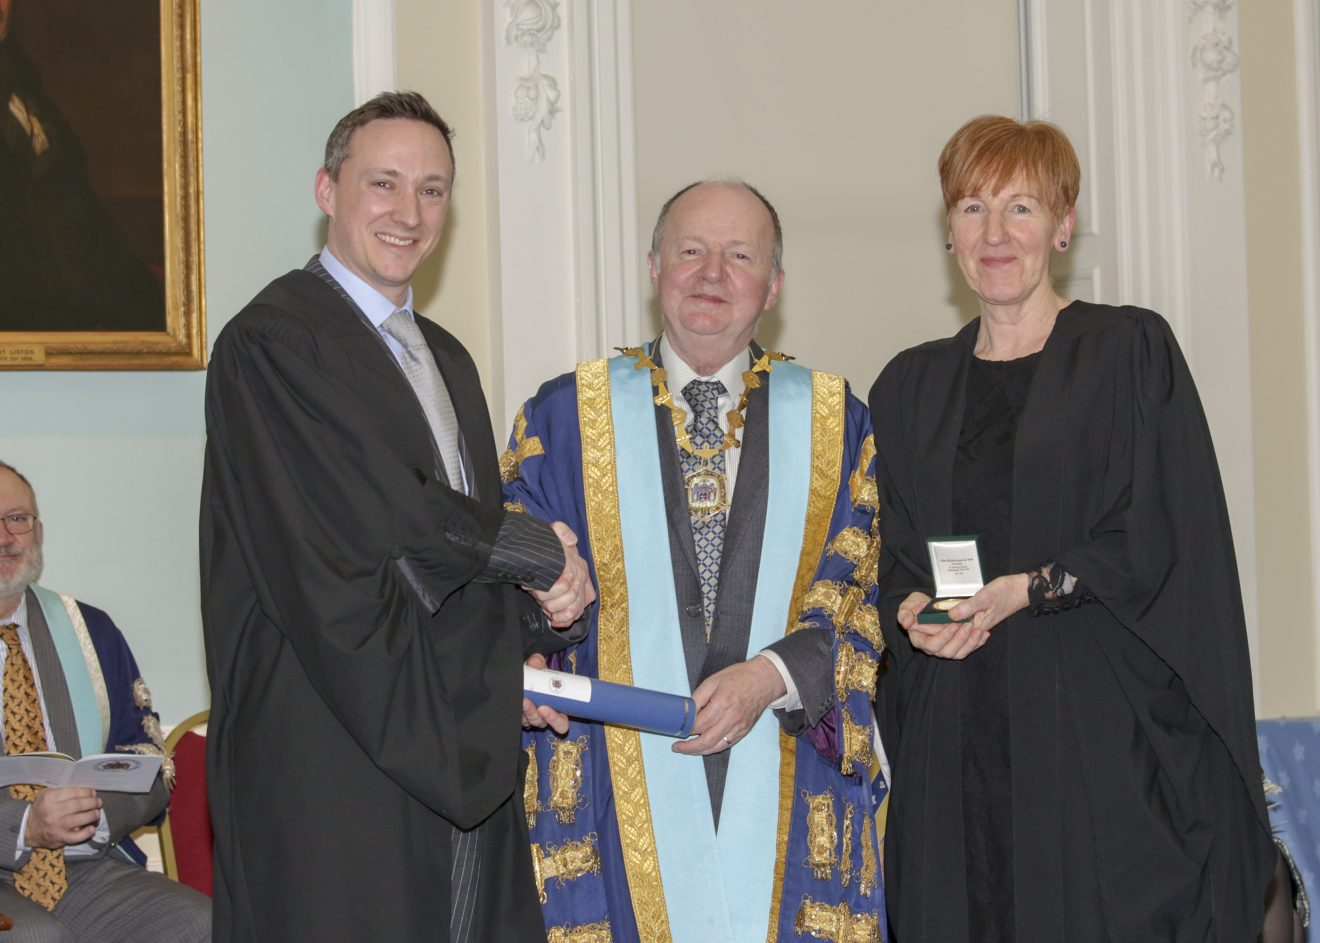 First Dundas medal awarded to specialist palliative care team in Glasgow